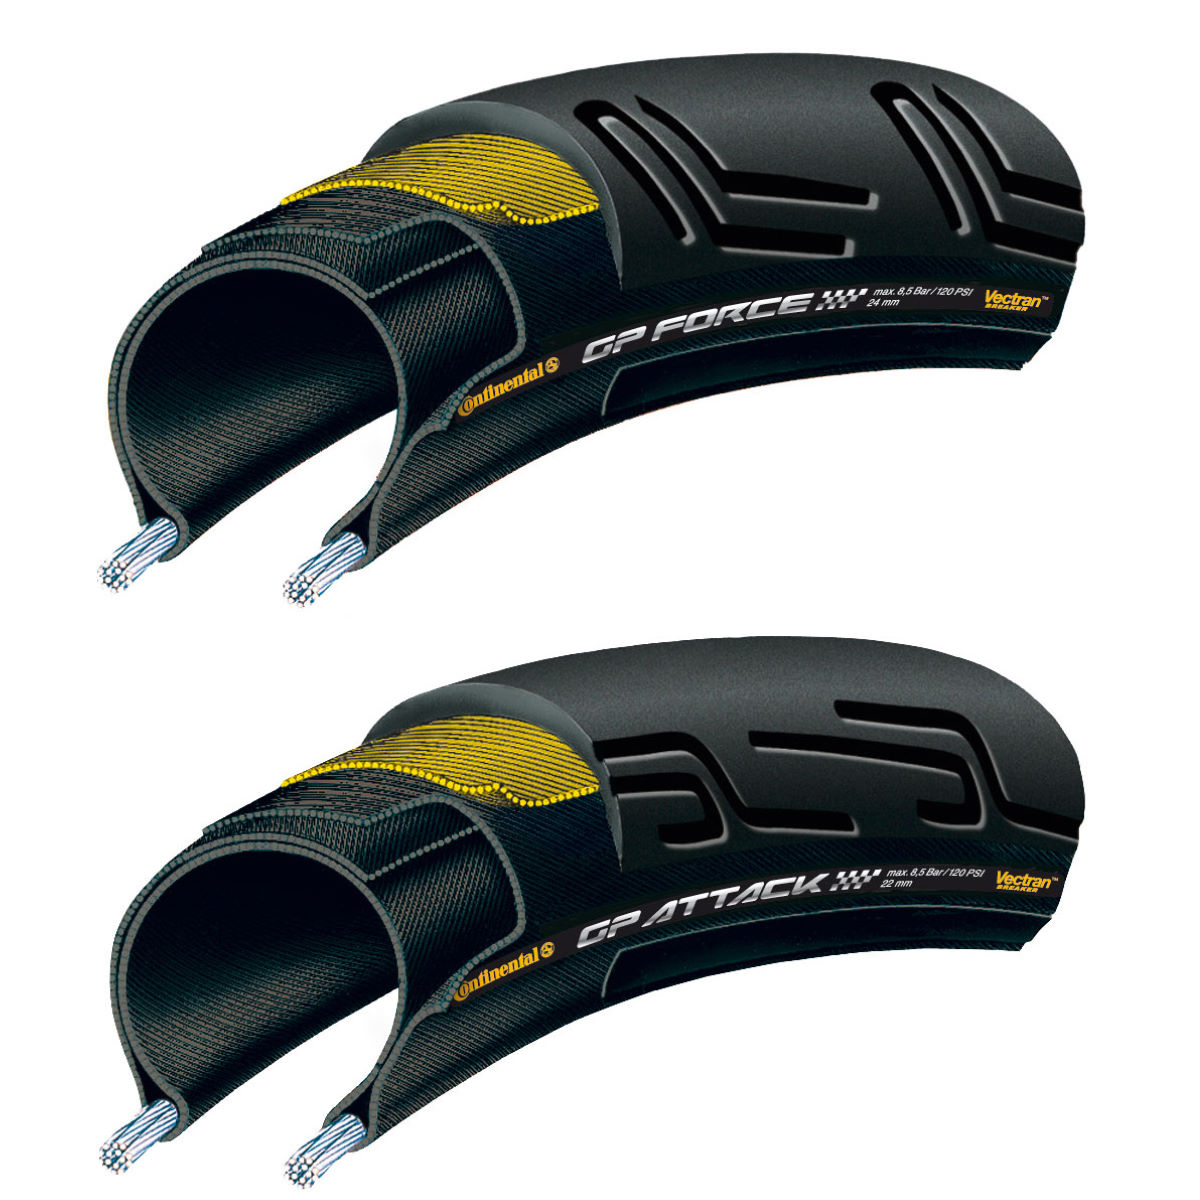 Pneus Continental GP Force II et Attack II (set, souples) - Noir